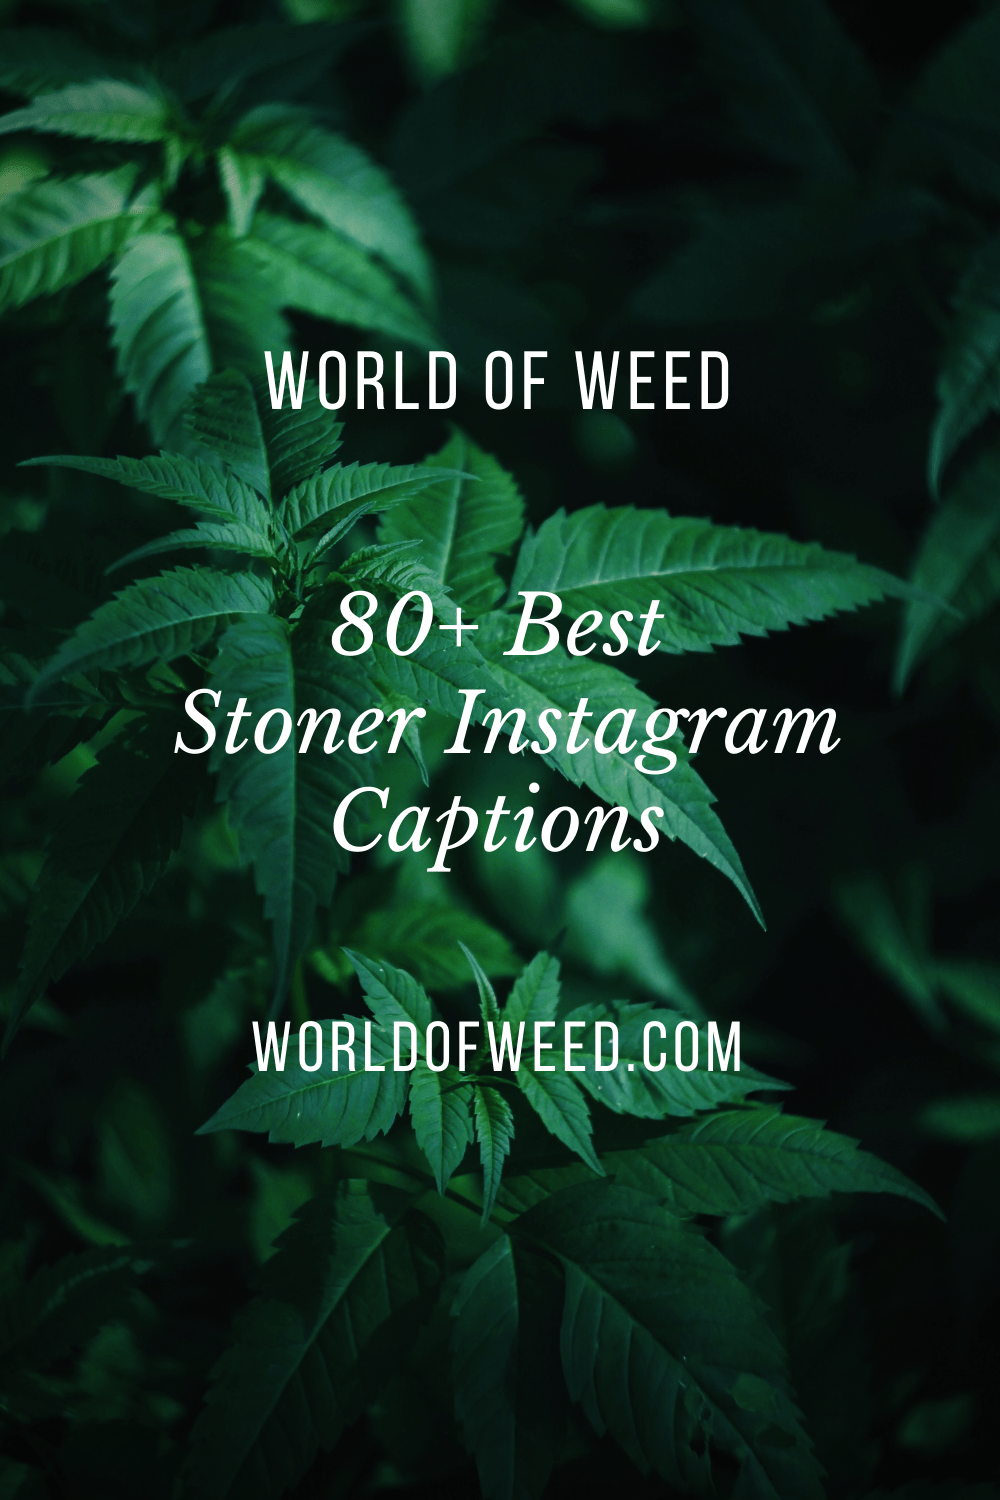 Stoner Quotes For Instagram : stoner, quotes, instagram, Stoner, Instagram, Captions, World